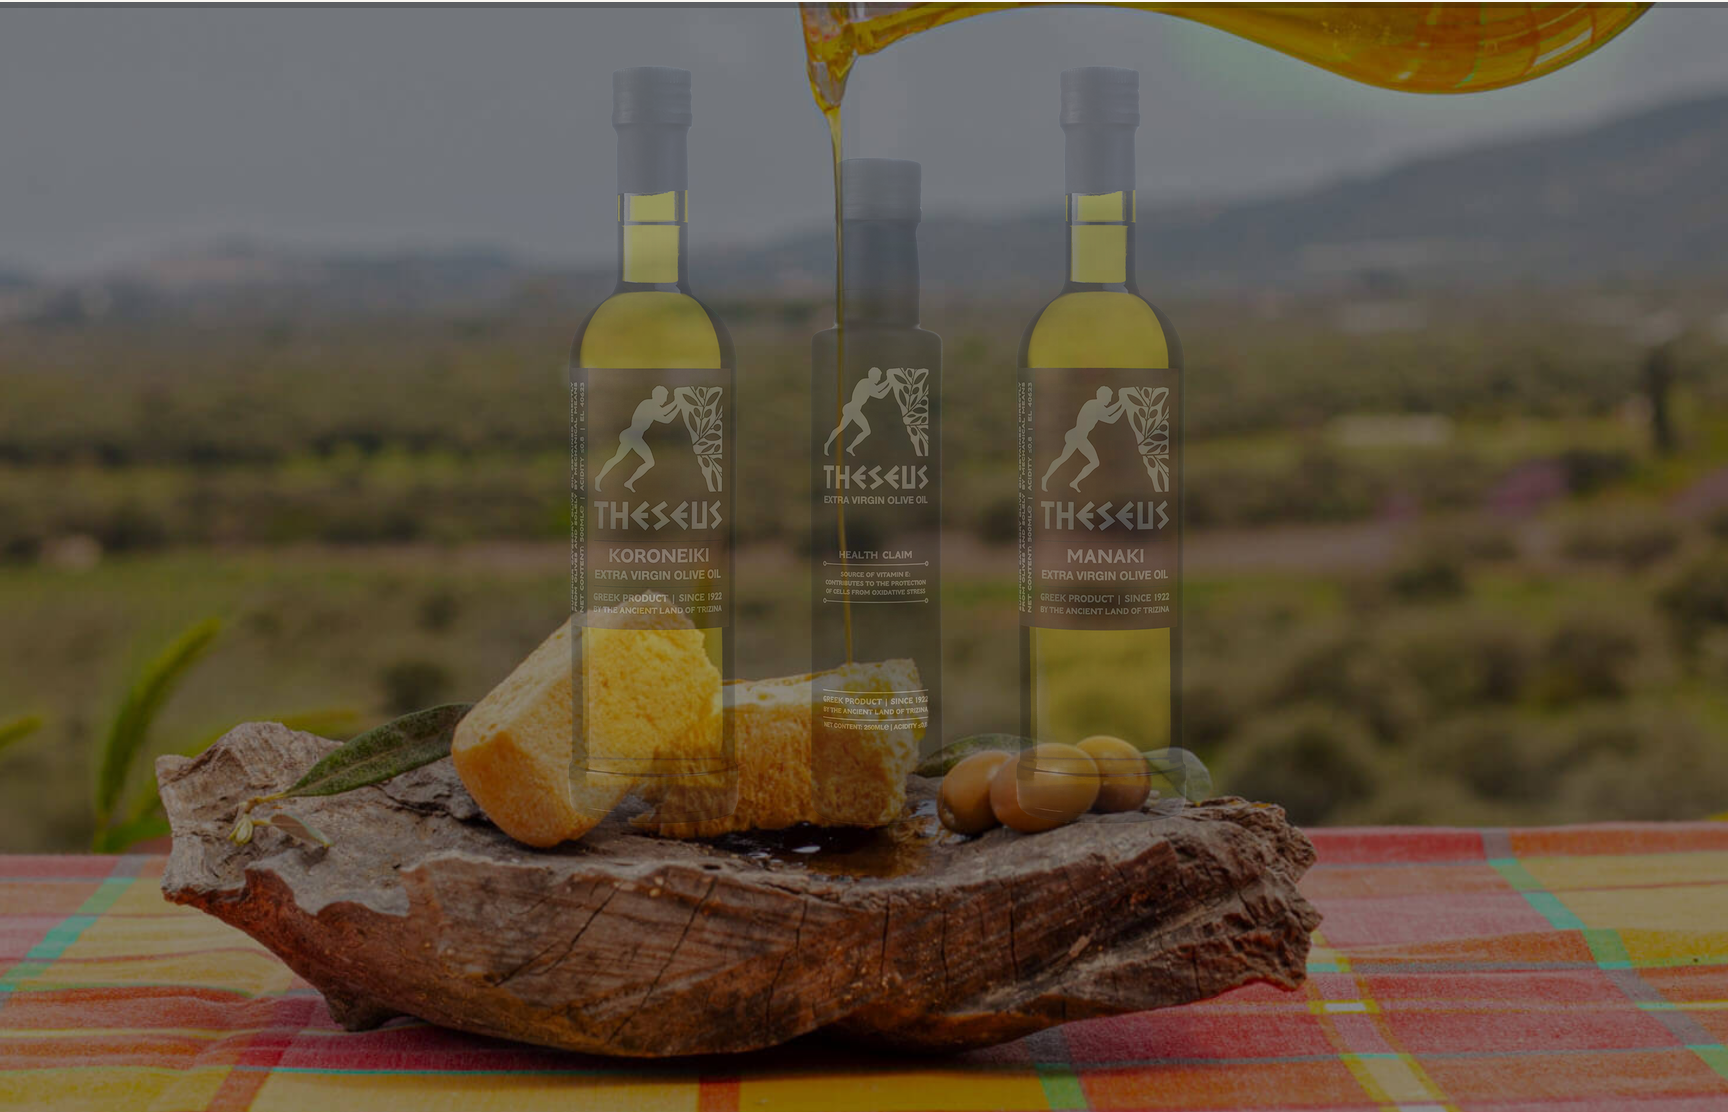 Screenshot of animation from the Theseus Extra Virgin Olive Oil website (https://theseusevoo.gr/)